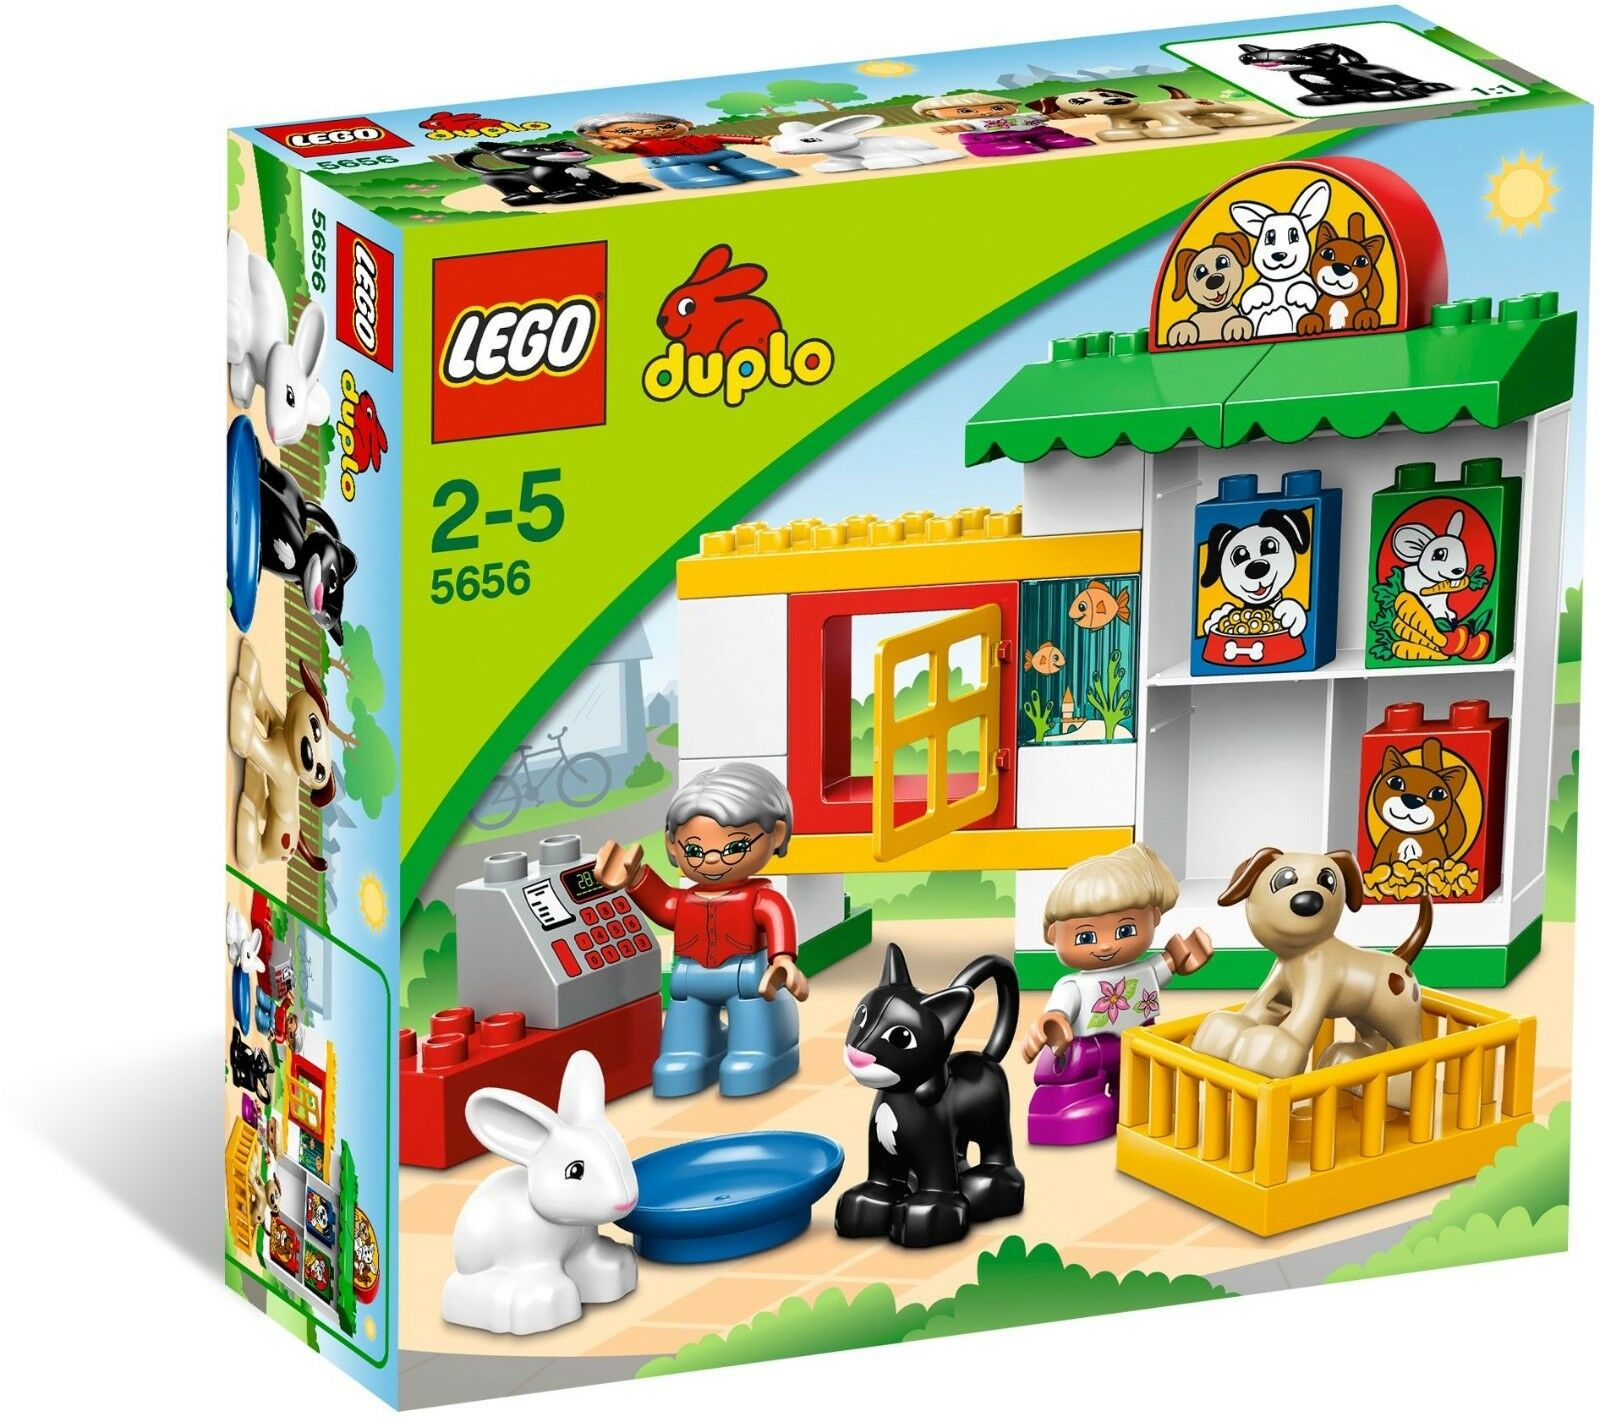 BRAND NEW LEGO DUPLO PET SHOP 5656